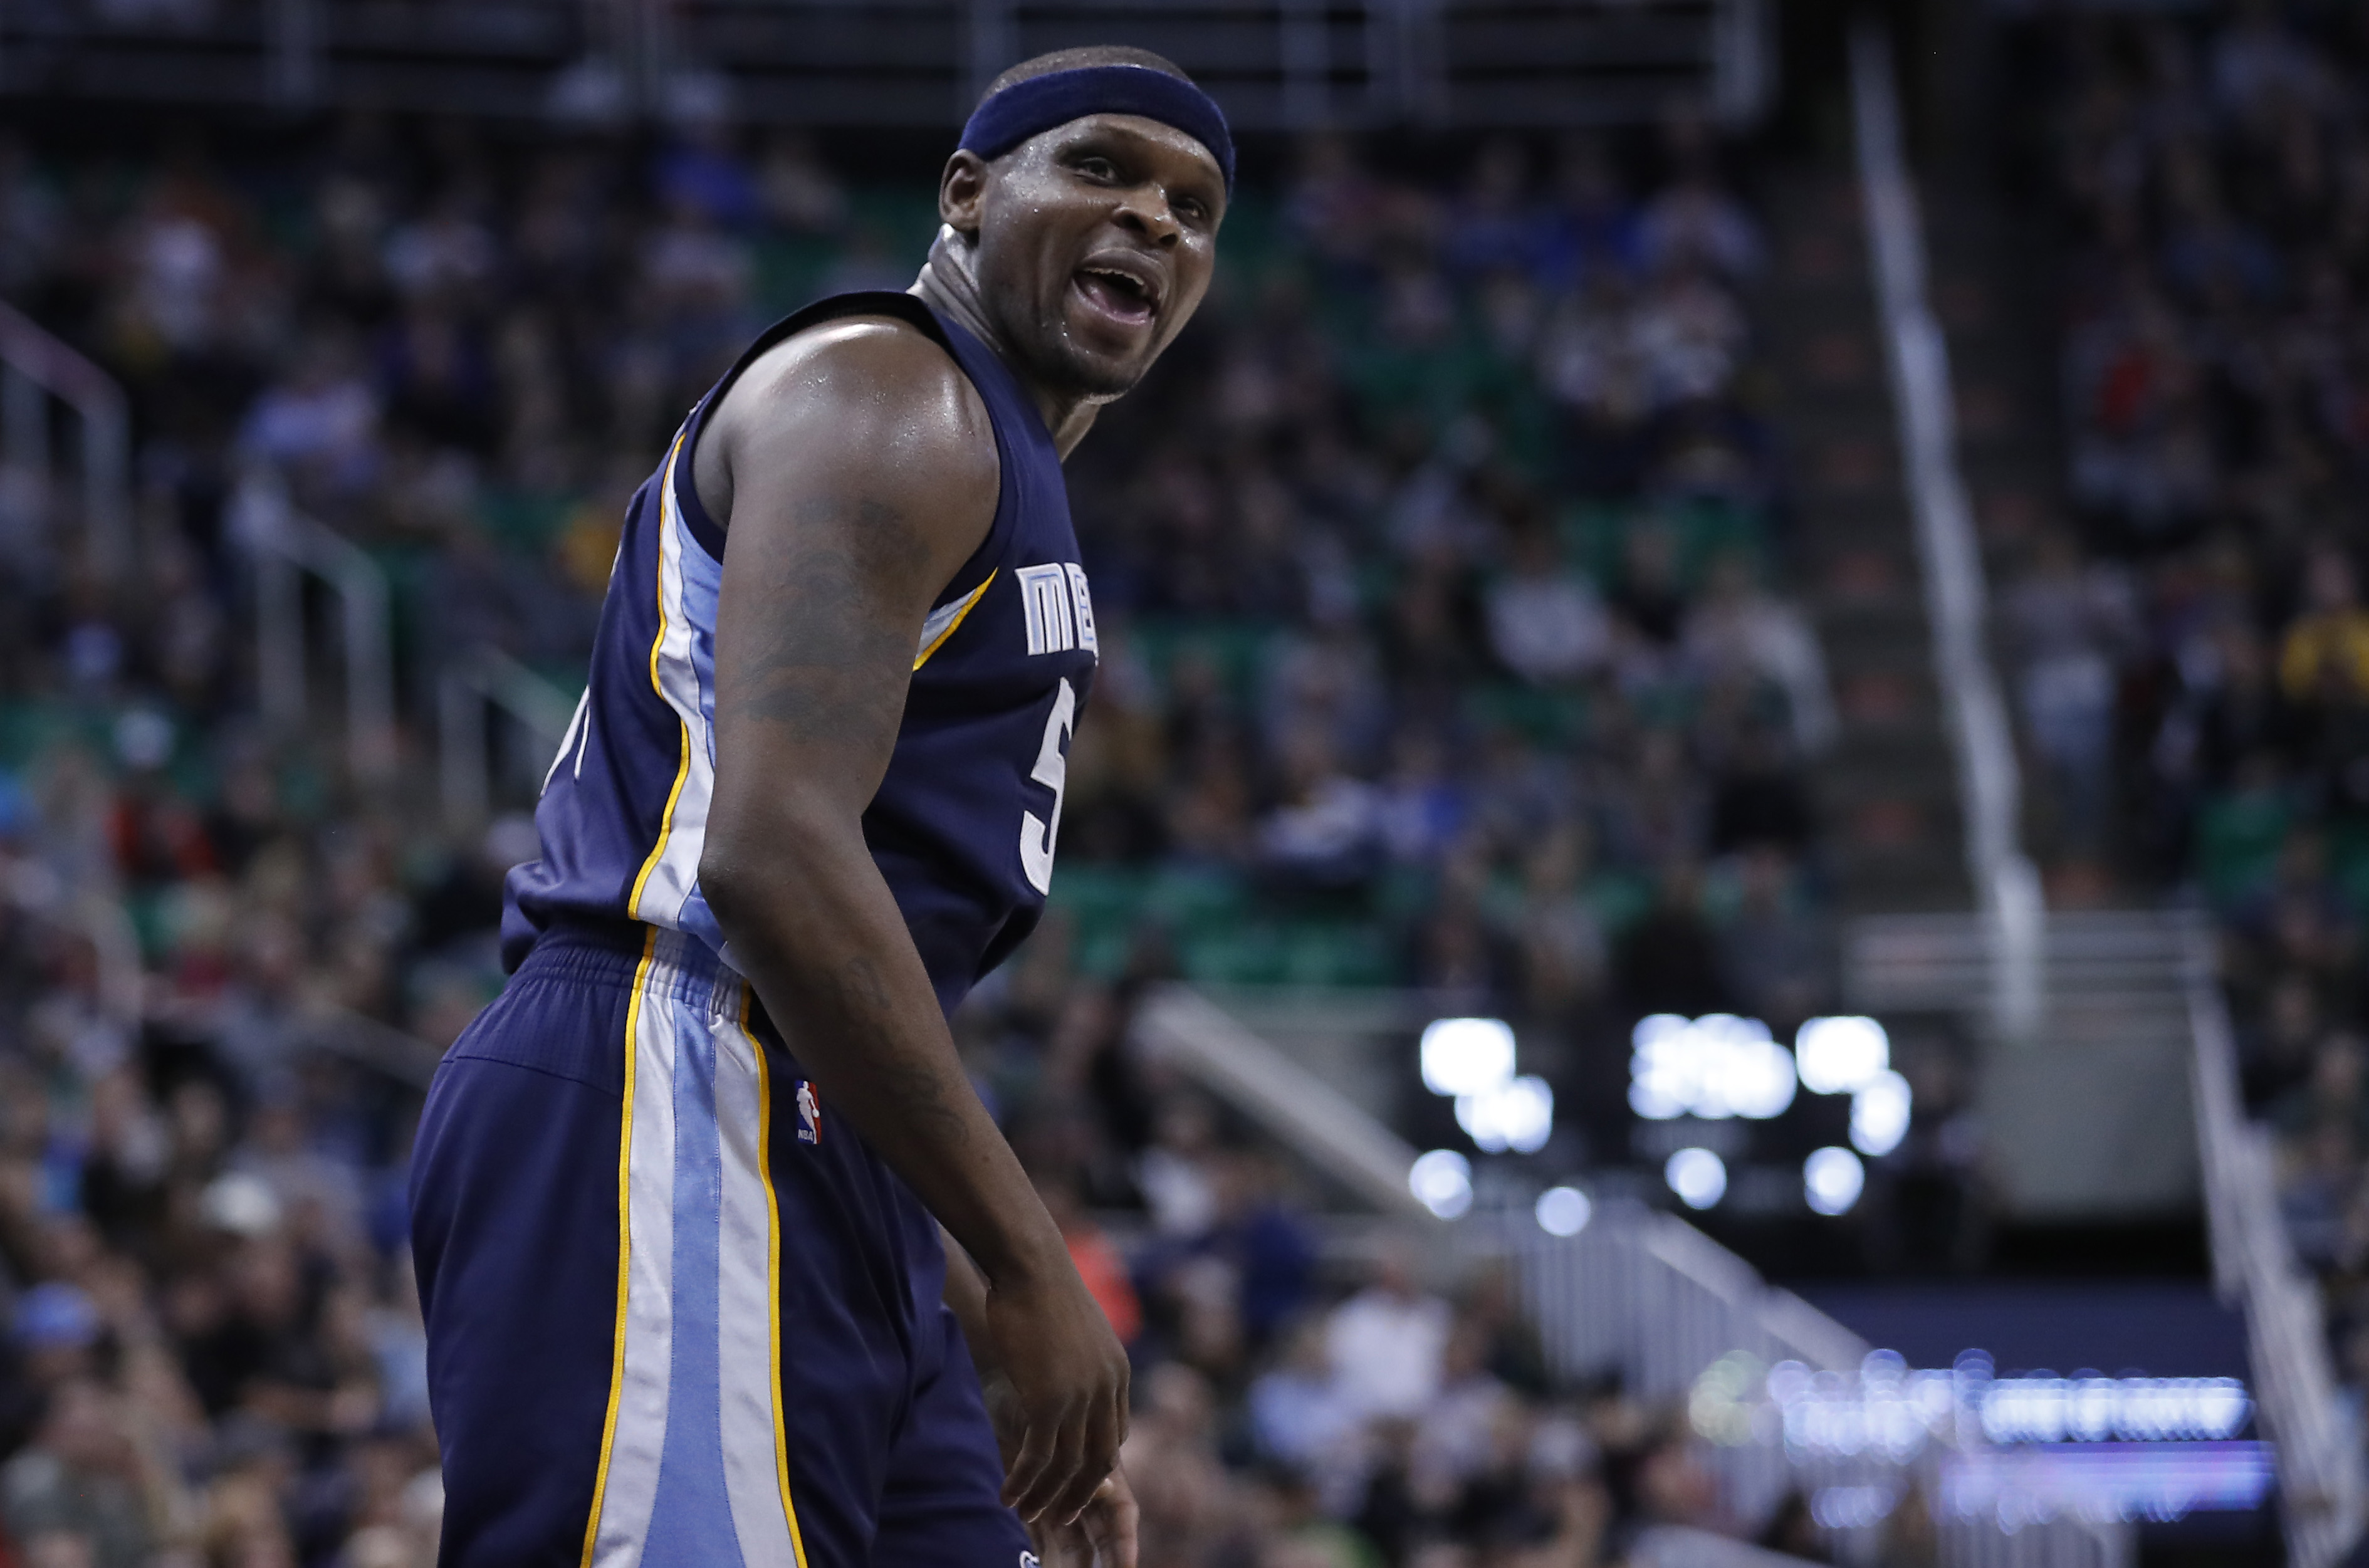 Jan 28, 2017; Salt Lake City, UT, USA; Memphis Grizzlies forward Zach Randolph (50) reacts to a call in the second quarter against the Utah Jazz at Vivint Smart Home Arena. Mandatory Credit: Jeff Swinger-USA TODAY Sports